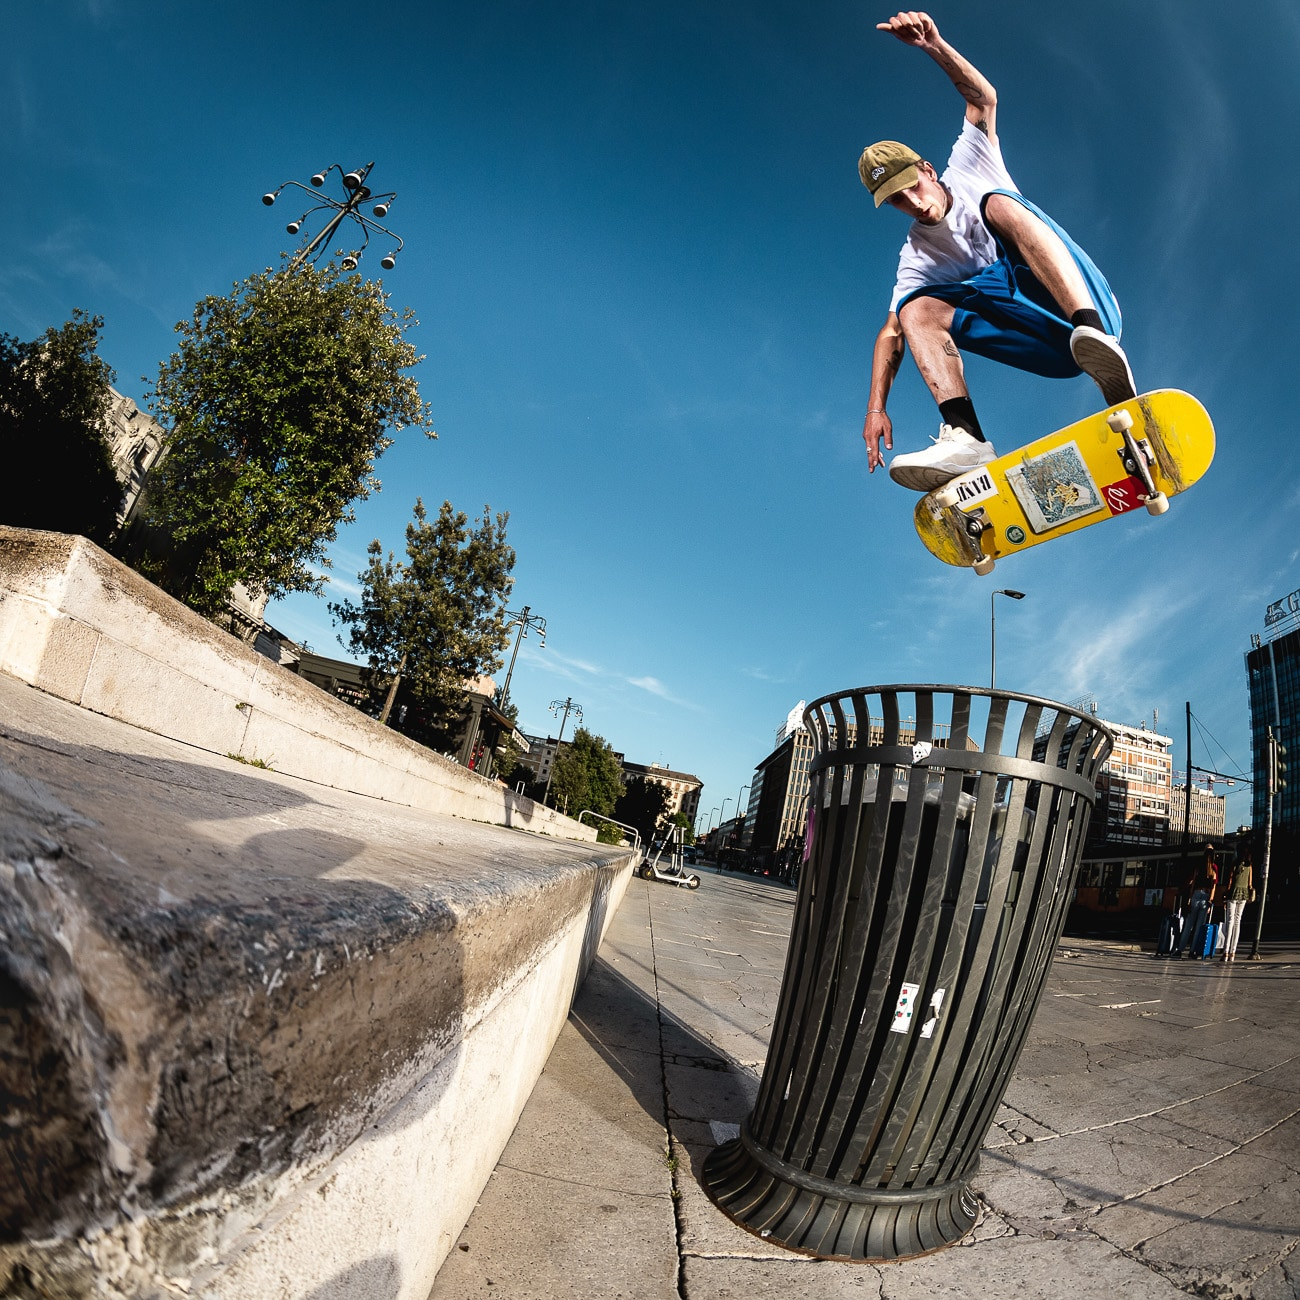 deaf-chips-irregularskatemag-milano-tour-hannes-mautner-photo-42